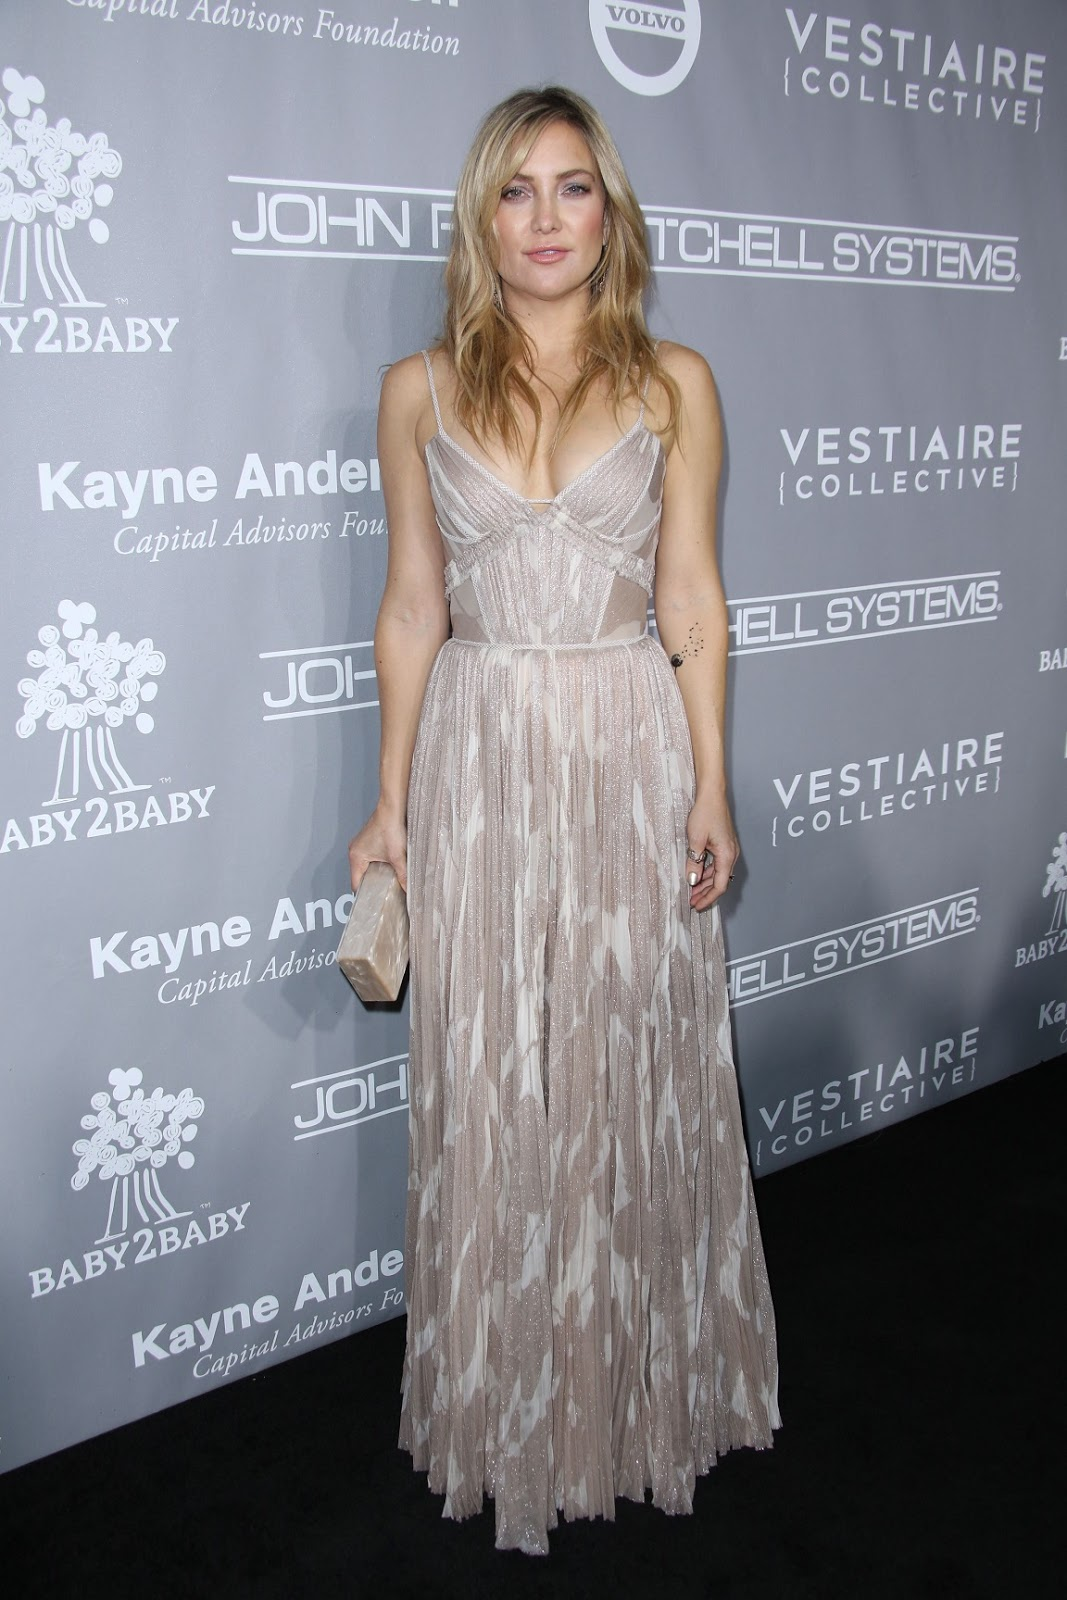 Kate Hudson – The Fifth Annual Baby2Baby Gala on Nov 12